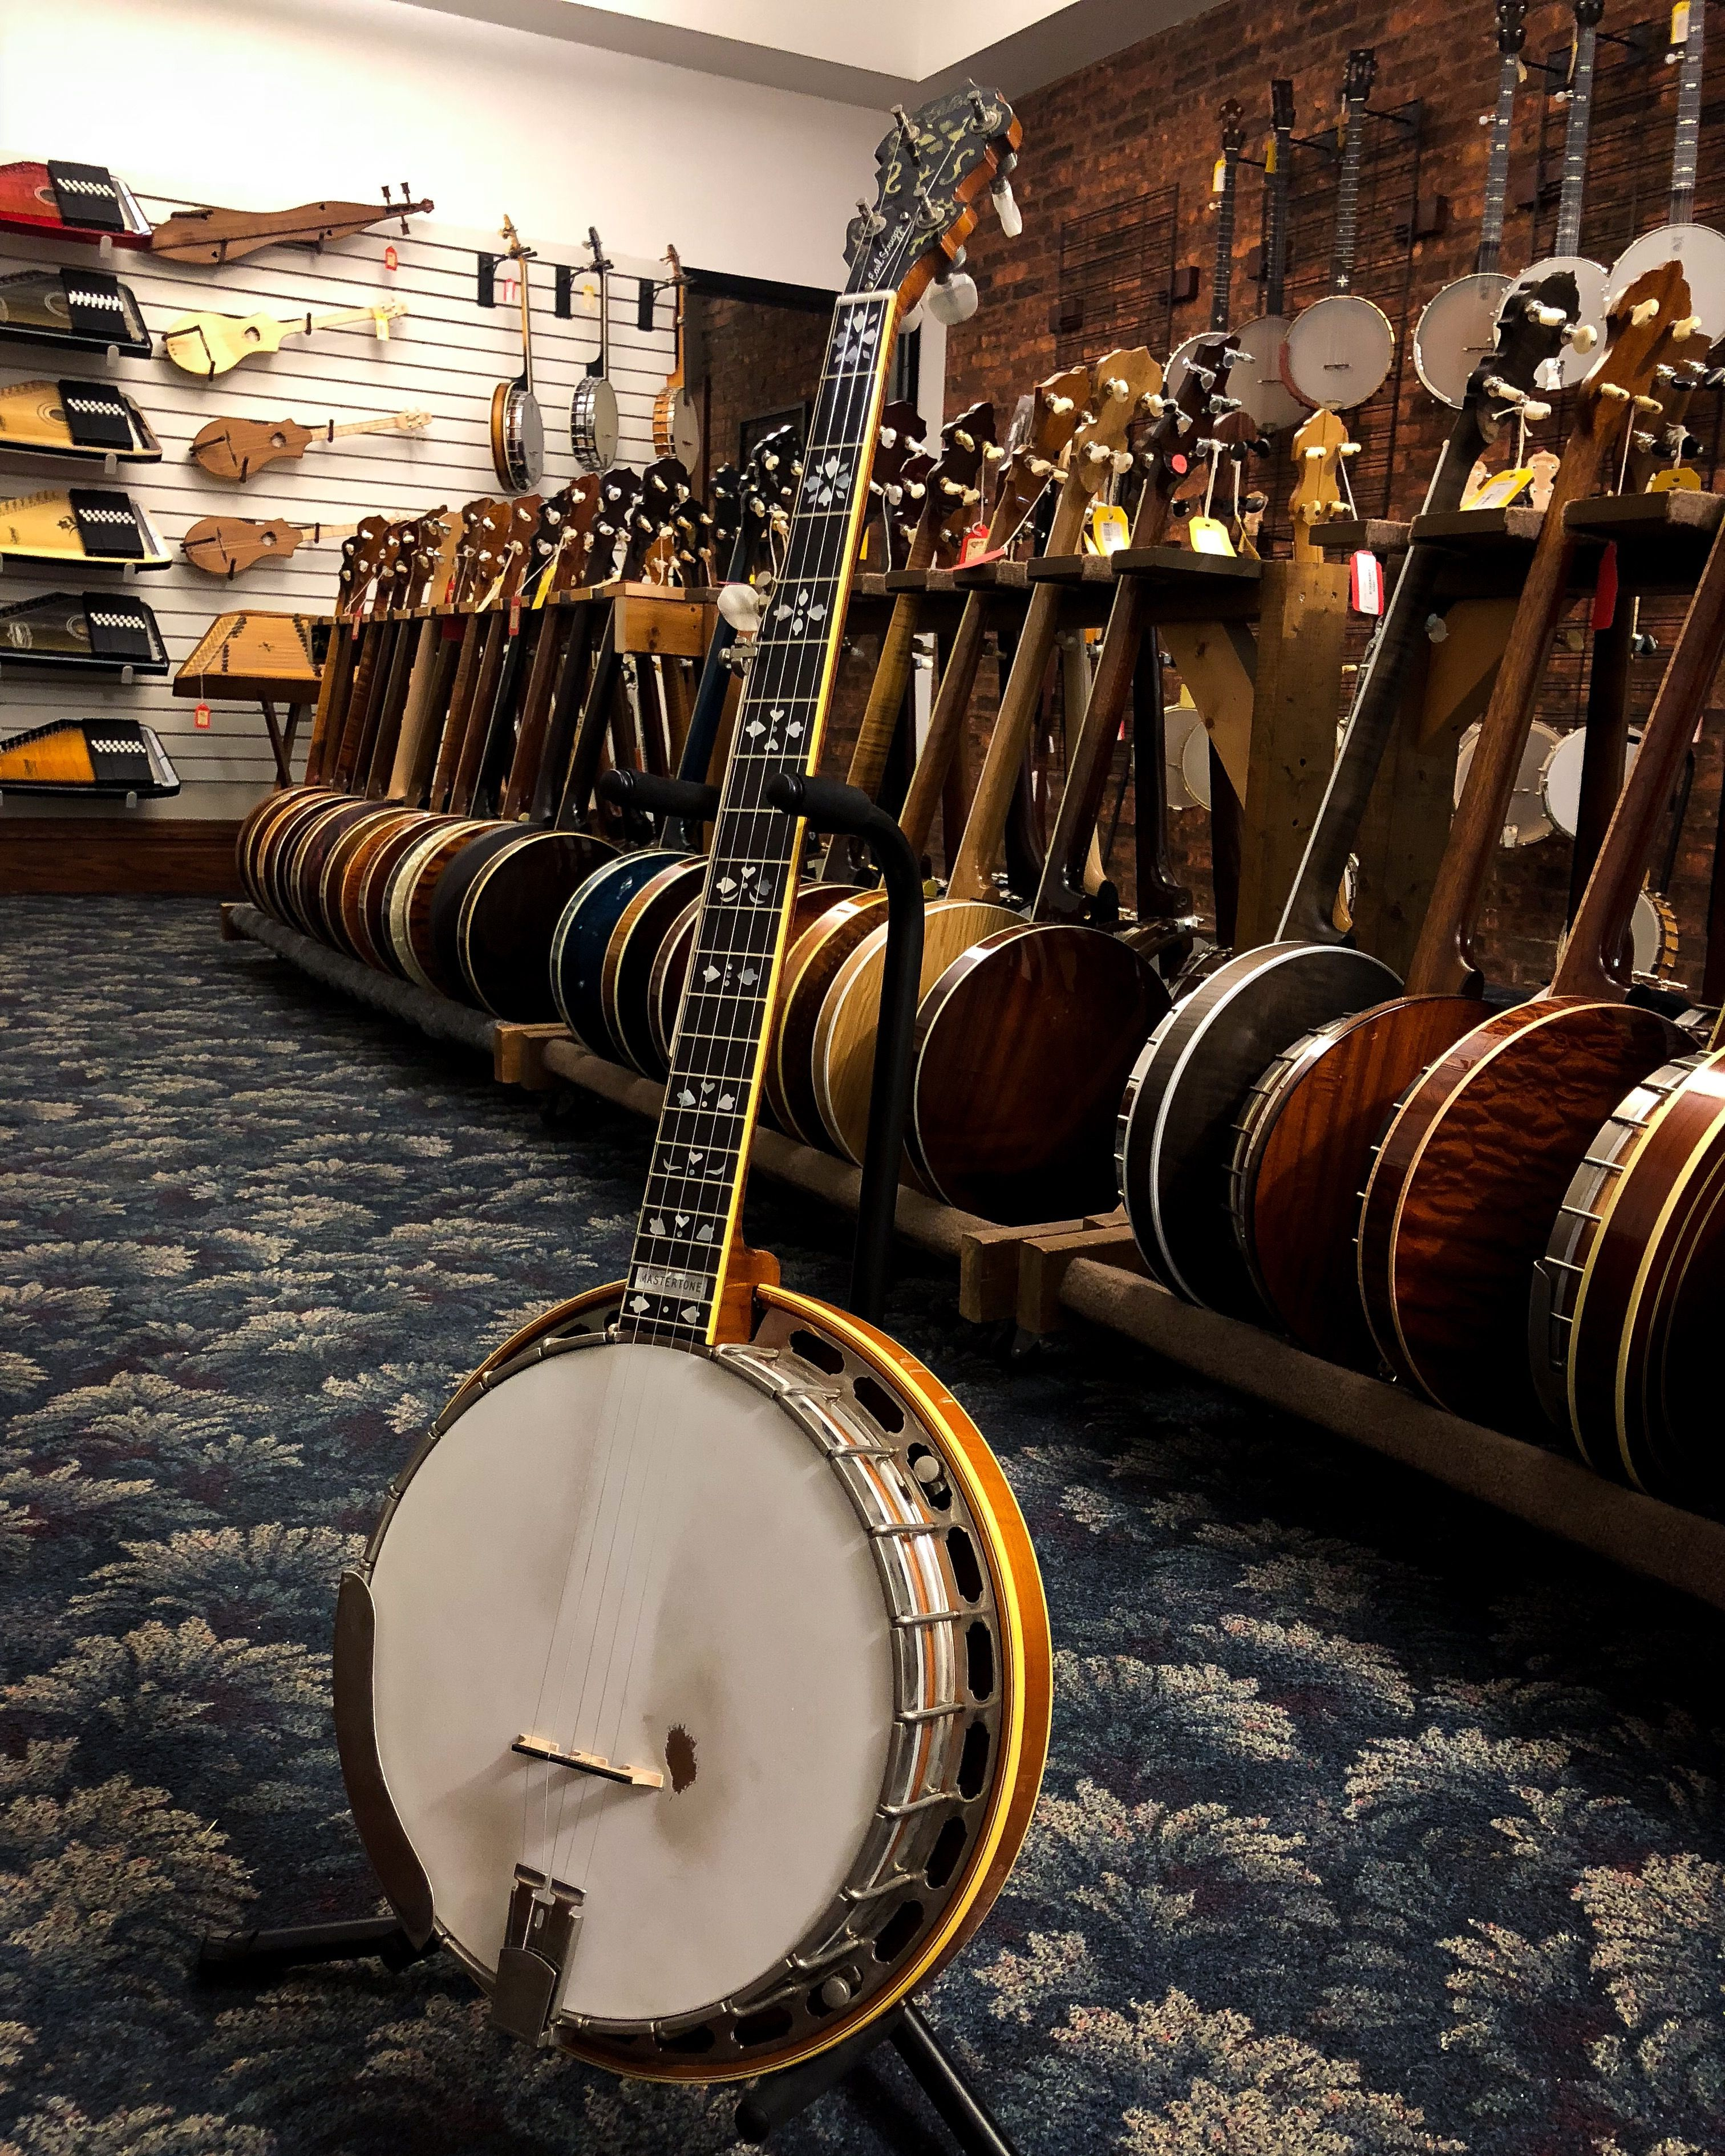 A fine resonator banjo, this Gibson Earl Scruggs model features a